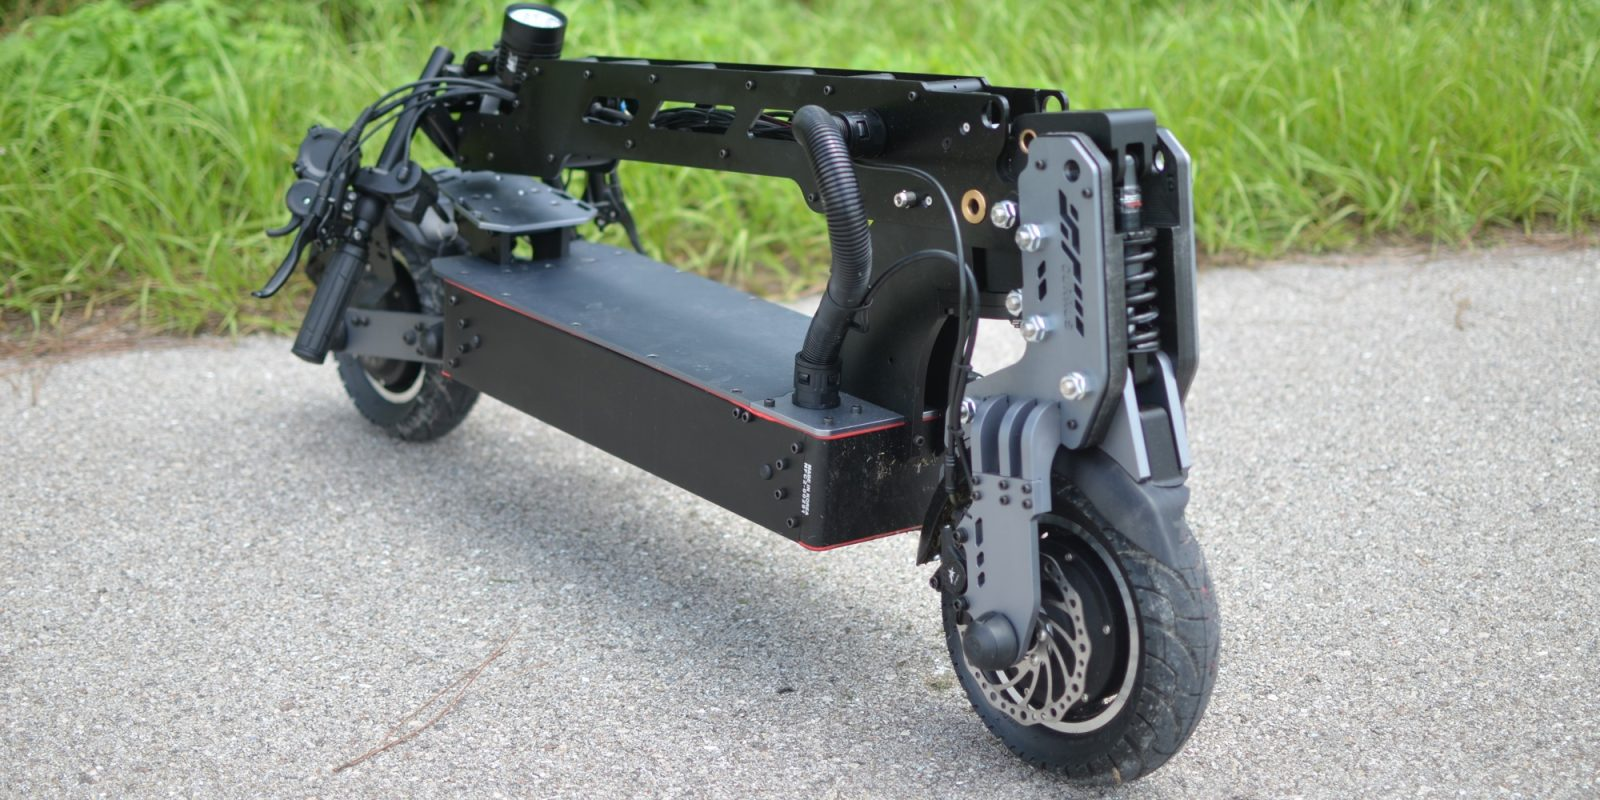 Review: The 43 MPH Currus NF electric scooter is built like a transformer tank